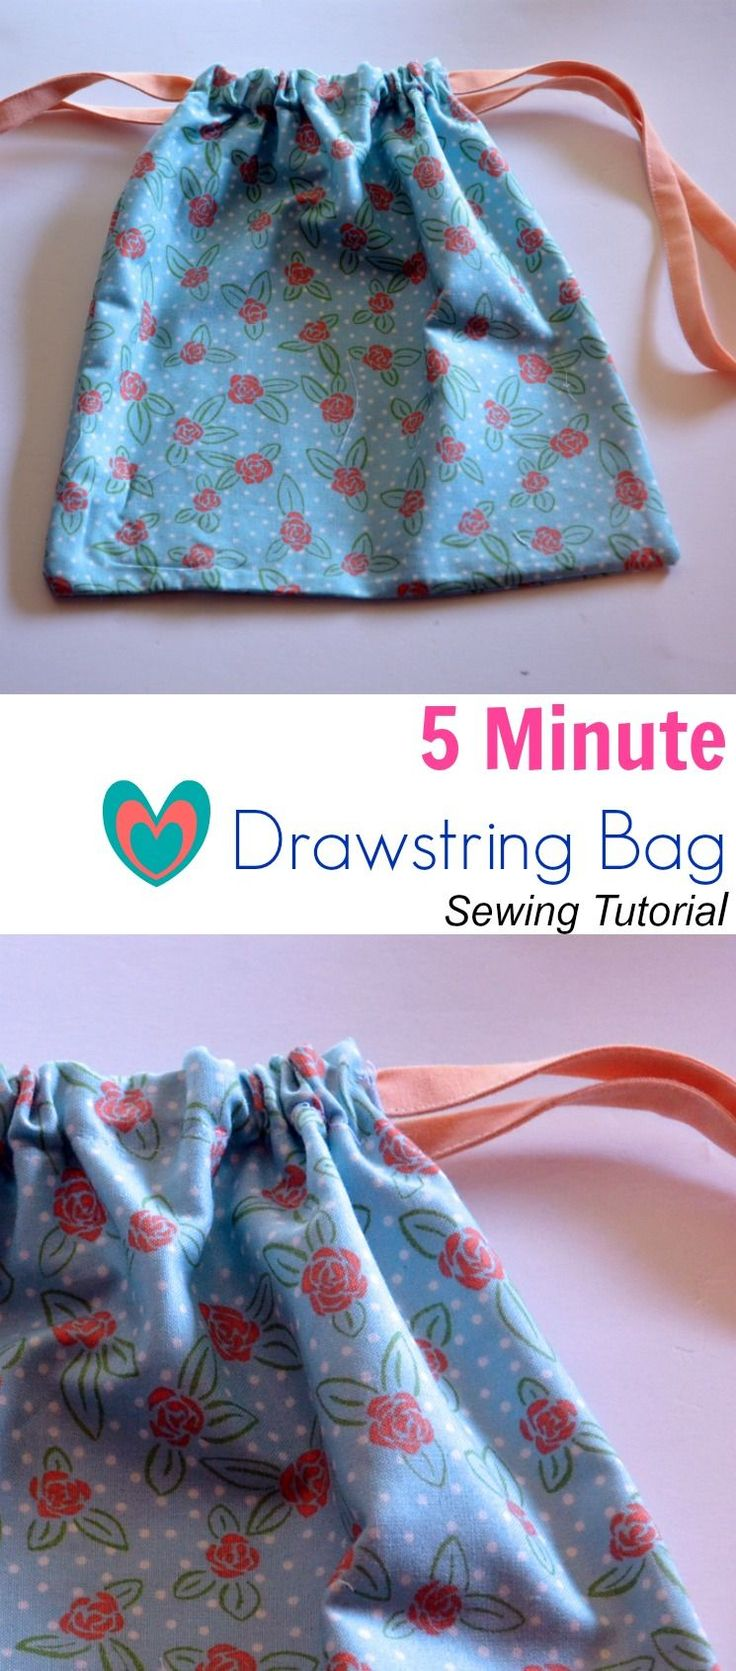 Best 25 diy leather drawstring pouch ideas on pinterest for Drawstring jewelry bag pattern